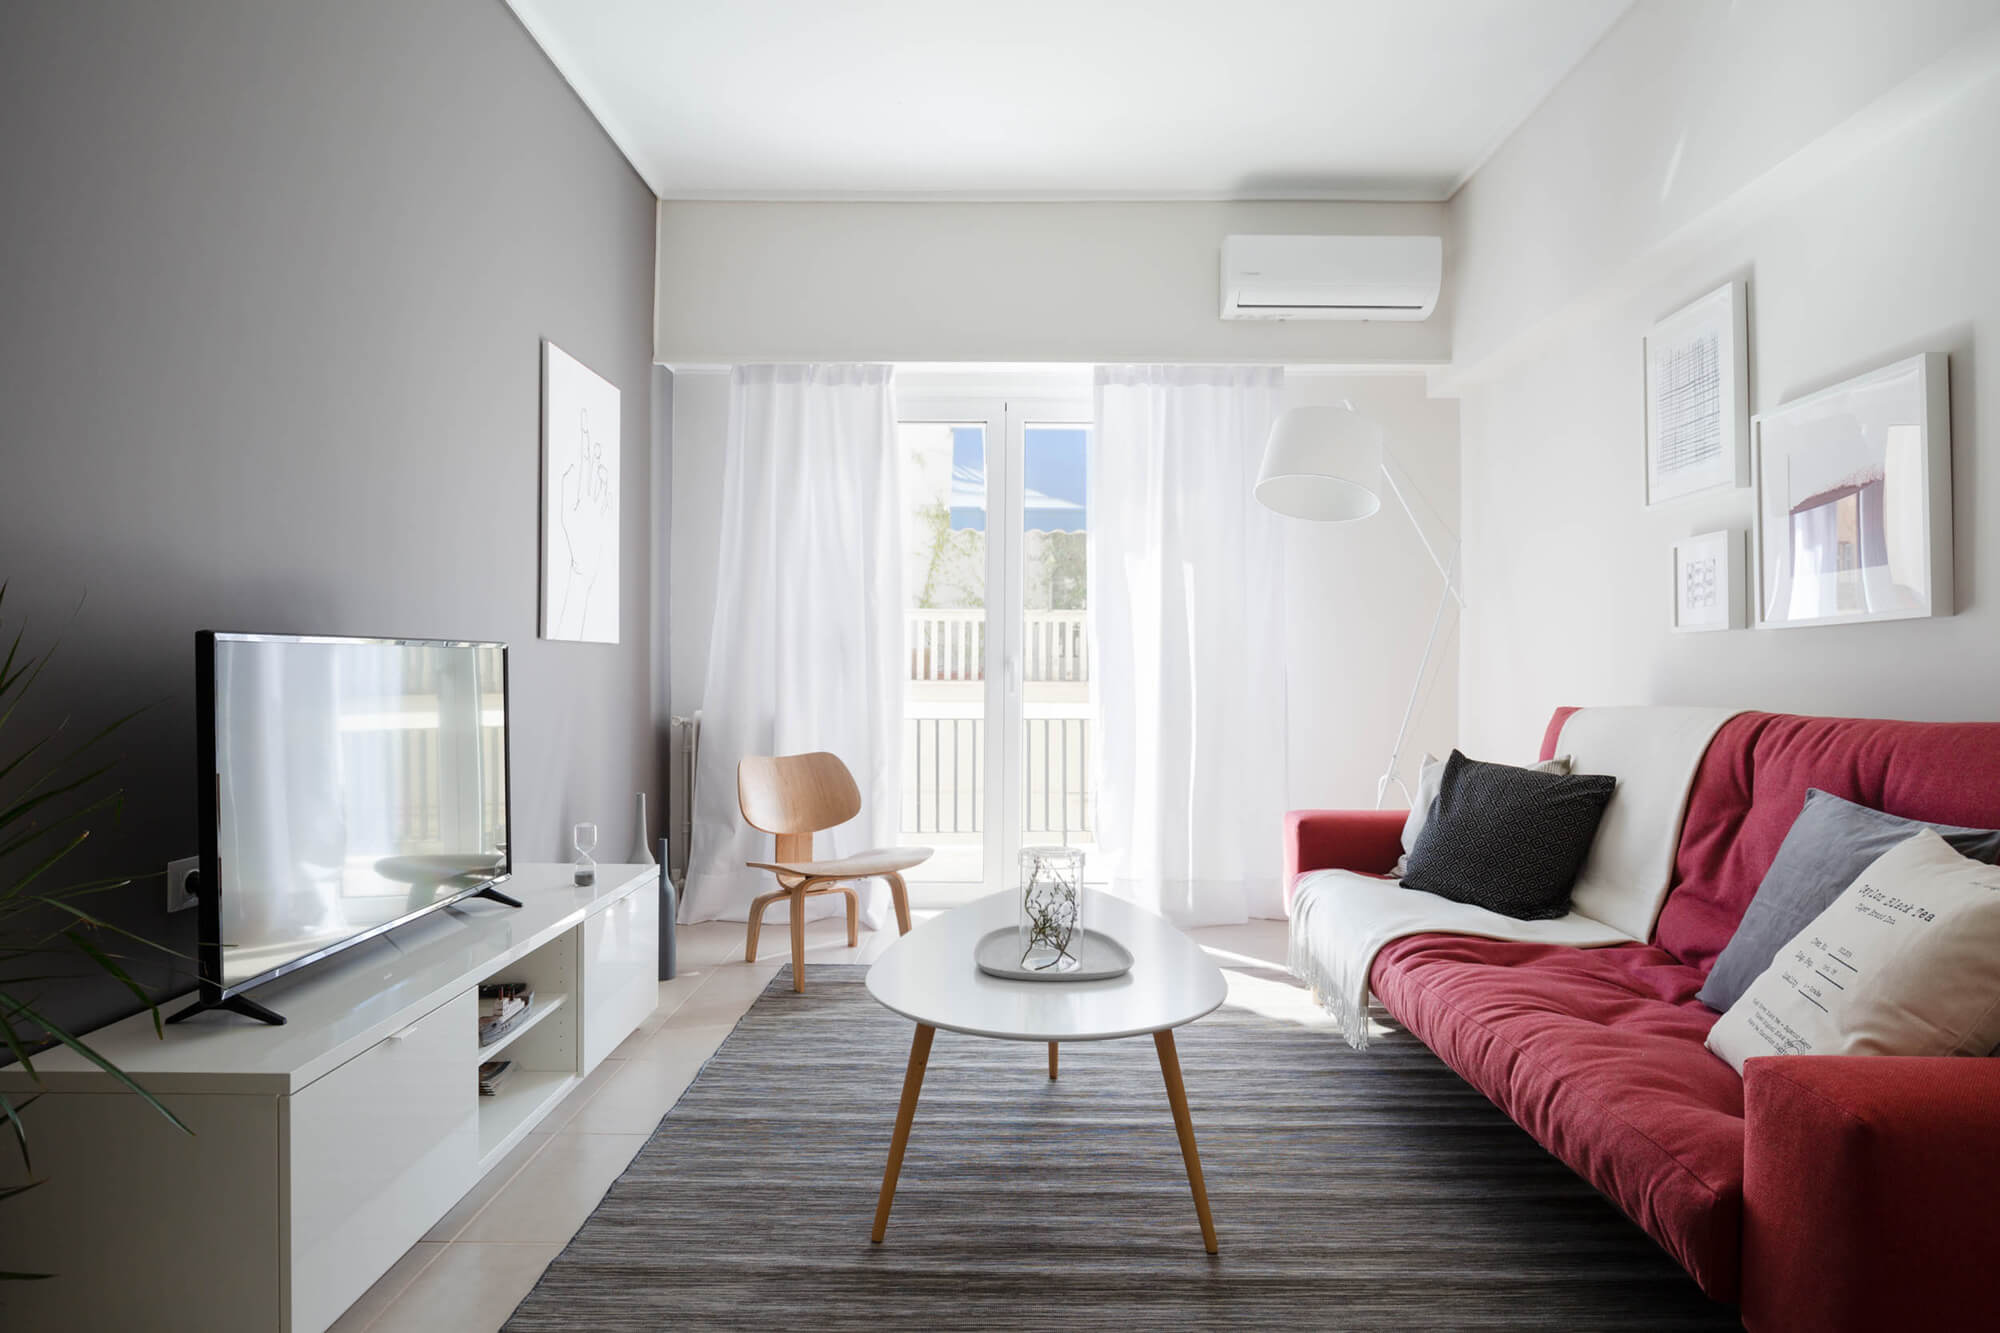 Central Stylish 1BR Apartment